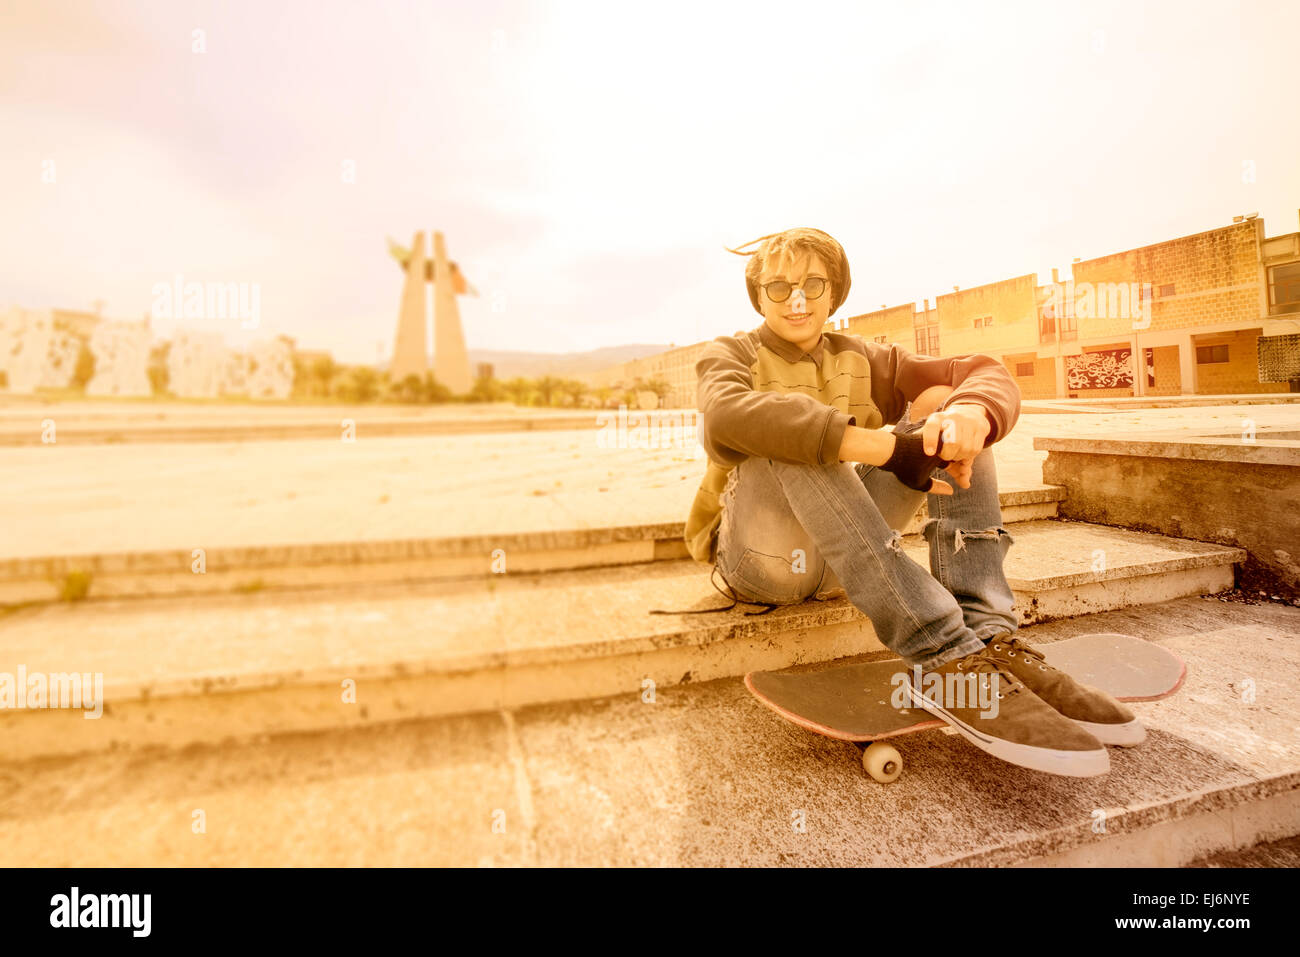 young rasta guy outdoor sitting on his skate with a warm filter applied - Stock Image